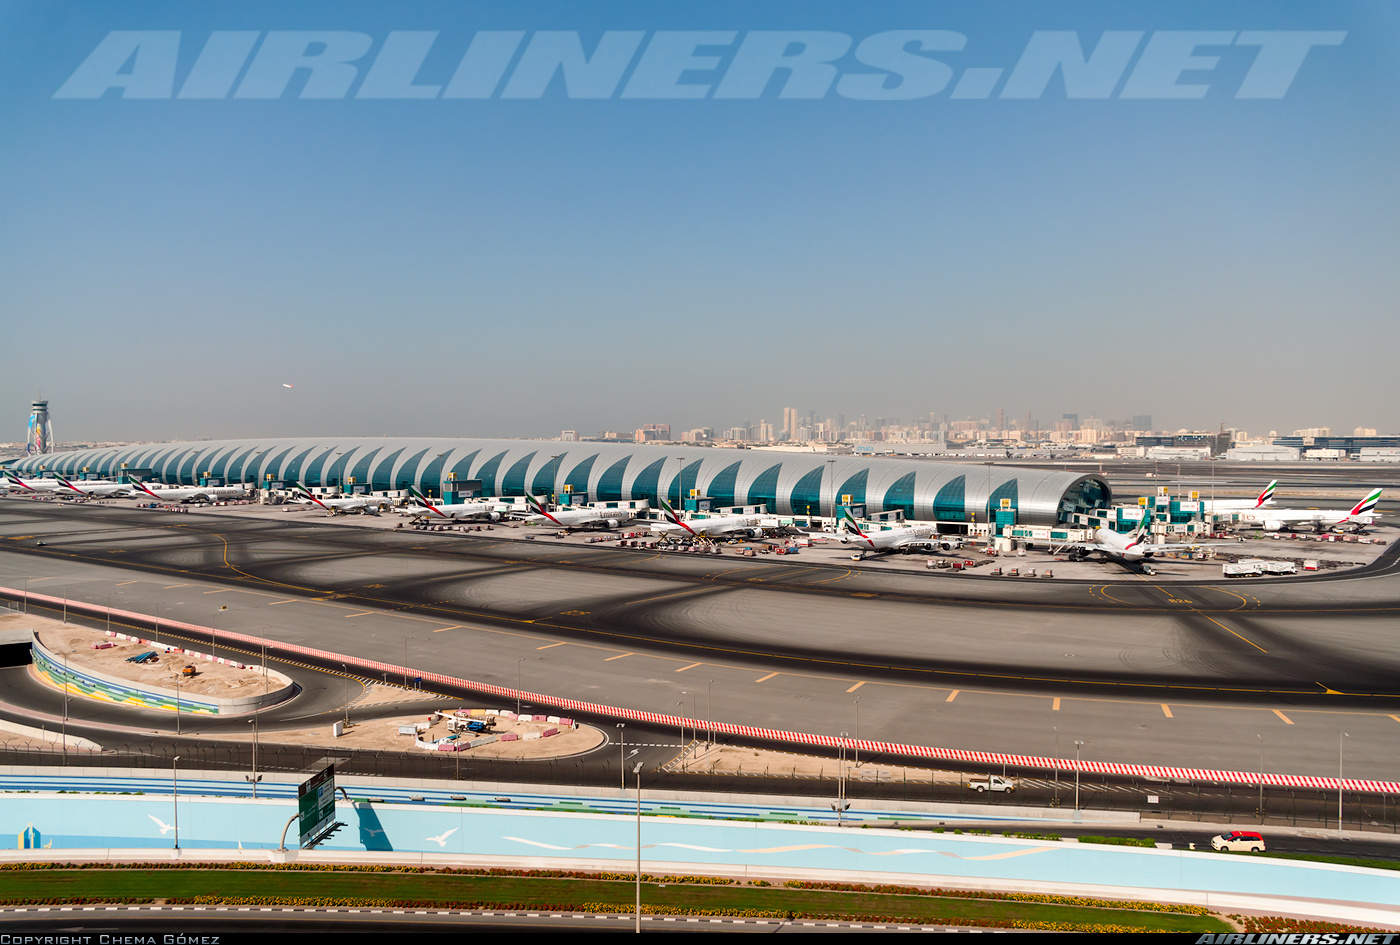 Dubai: Worlds Biggest Airport In Term of Passenger Numbers